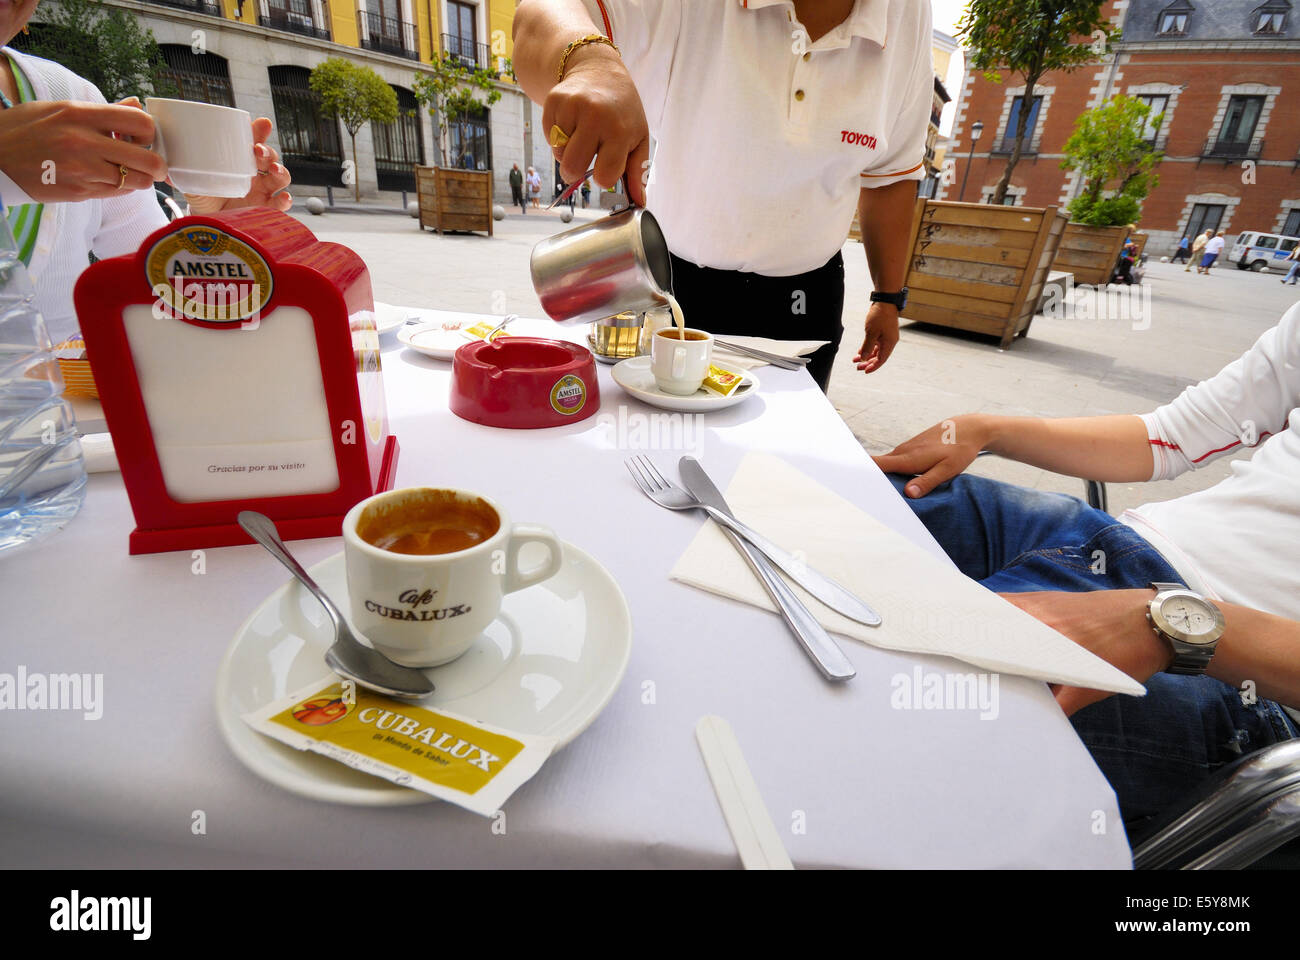 café, scene with different brands or logotypes, Madrid, Spain - Stock Image